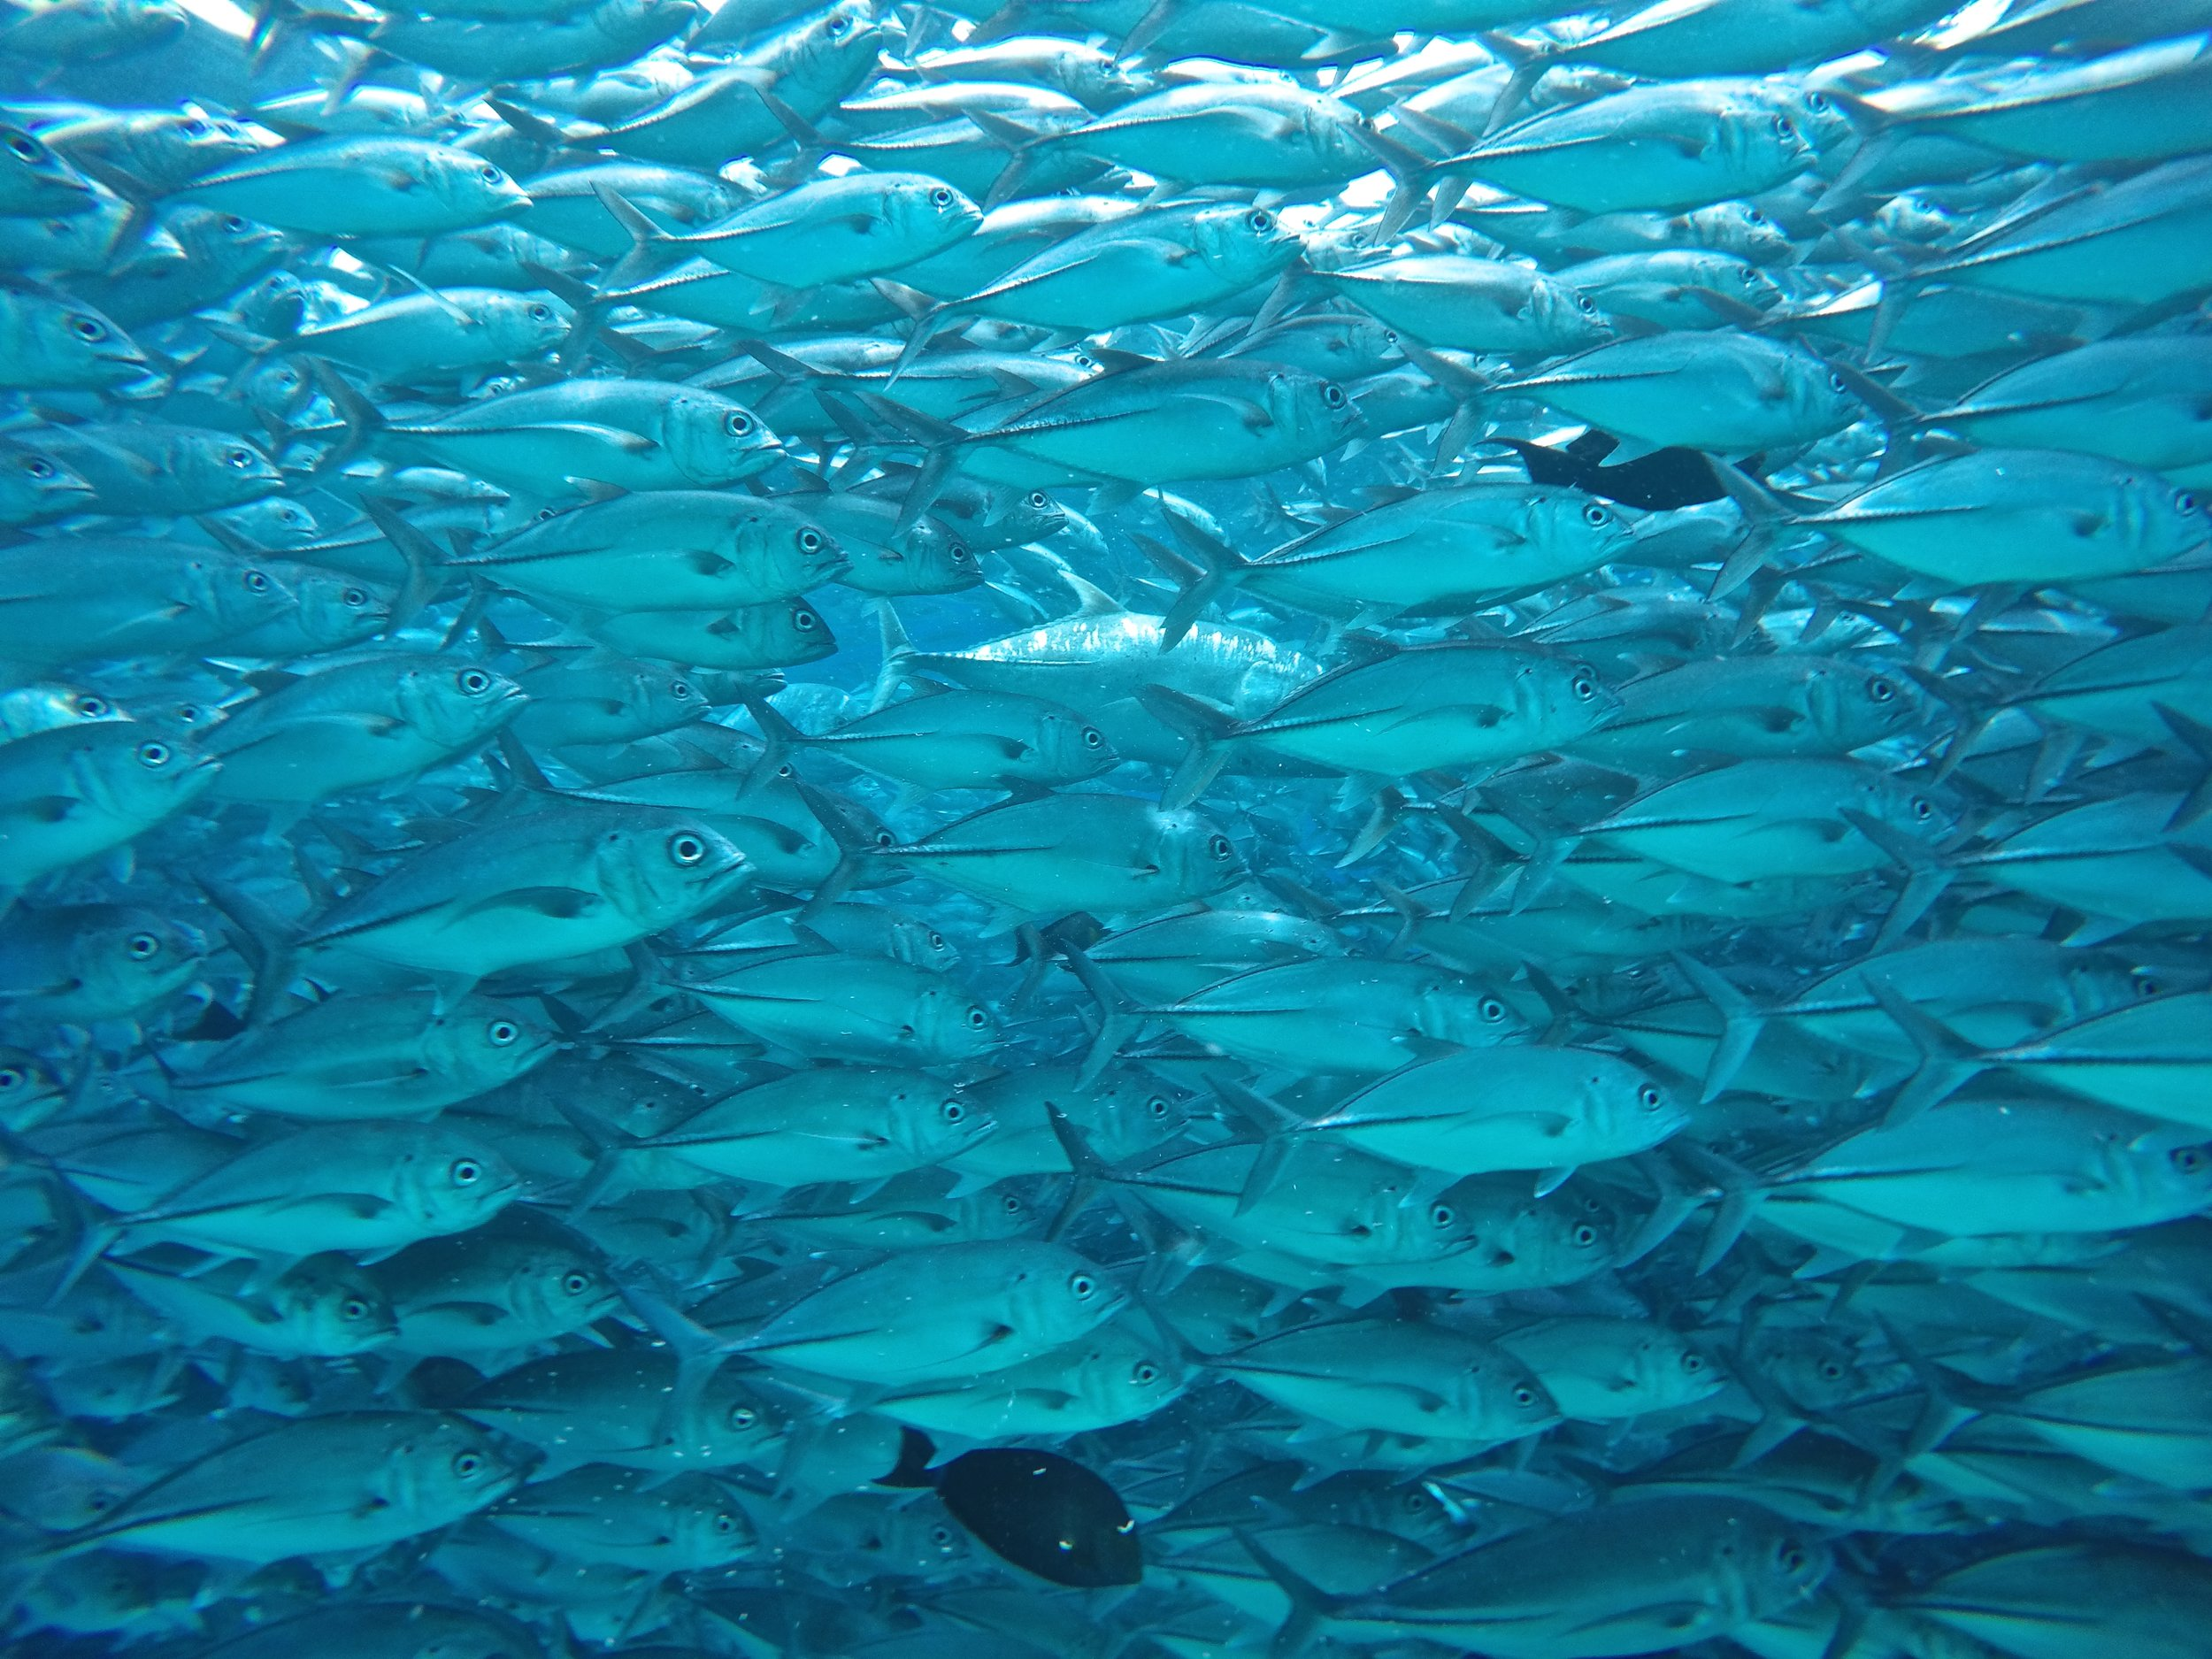 In the middle of a scuba dive on the beautiful Sipidan island, this school of jackfish came and decided to fully surround me. I lost sight of the dive master and my dive partner for just 10 seconds (long enough to pull out the GoPro and get a few photos)  which sent me into a mini panic attack. Thankfully the jackfish were just passing by in a very large number, and went along peacefully leaving me to continue on with an amazing dive full of marine life.